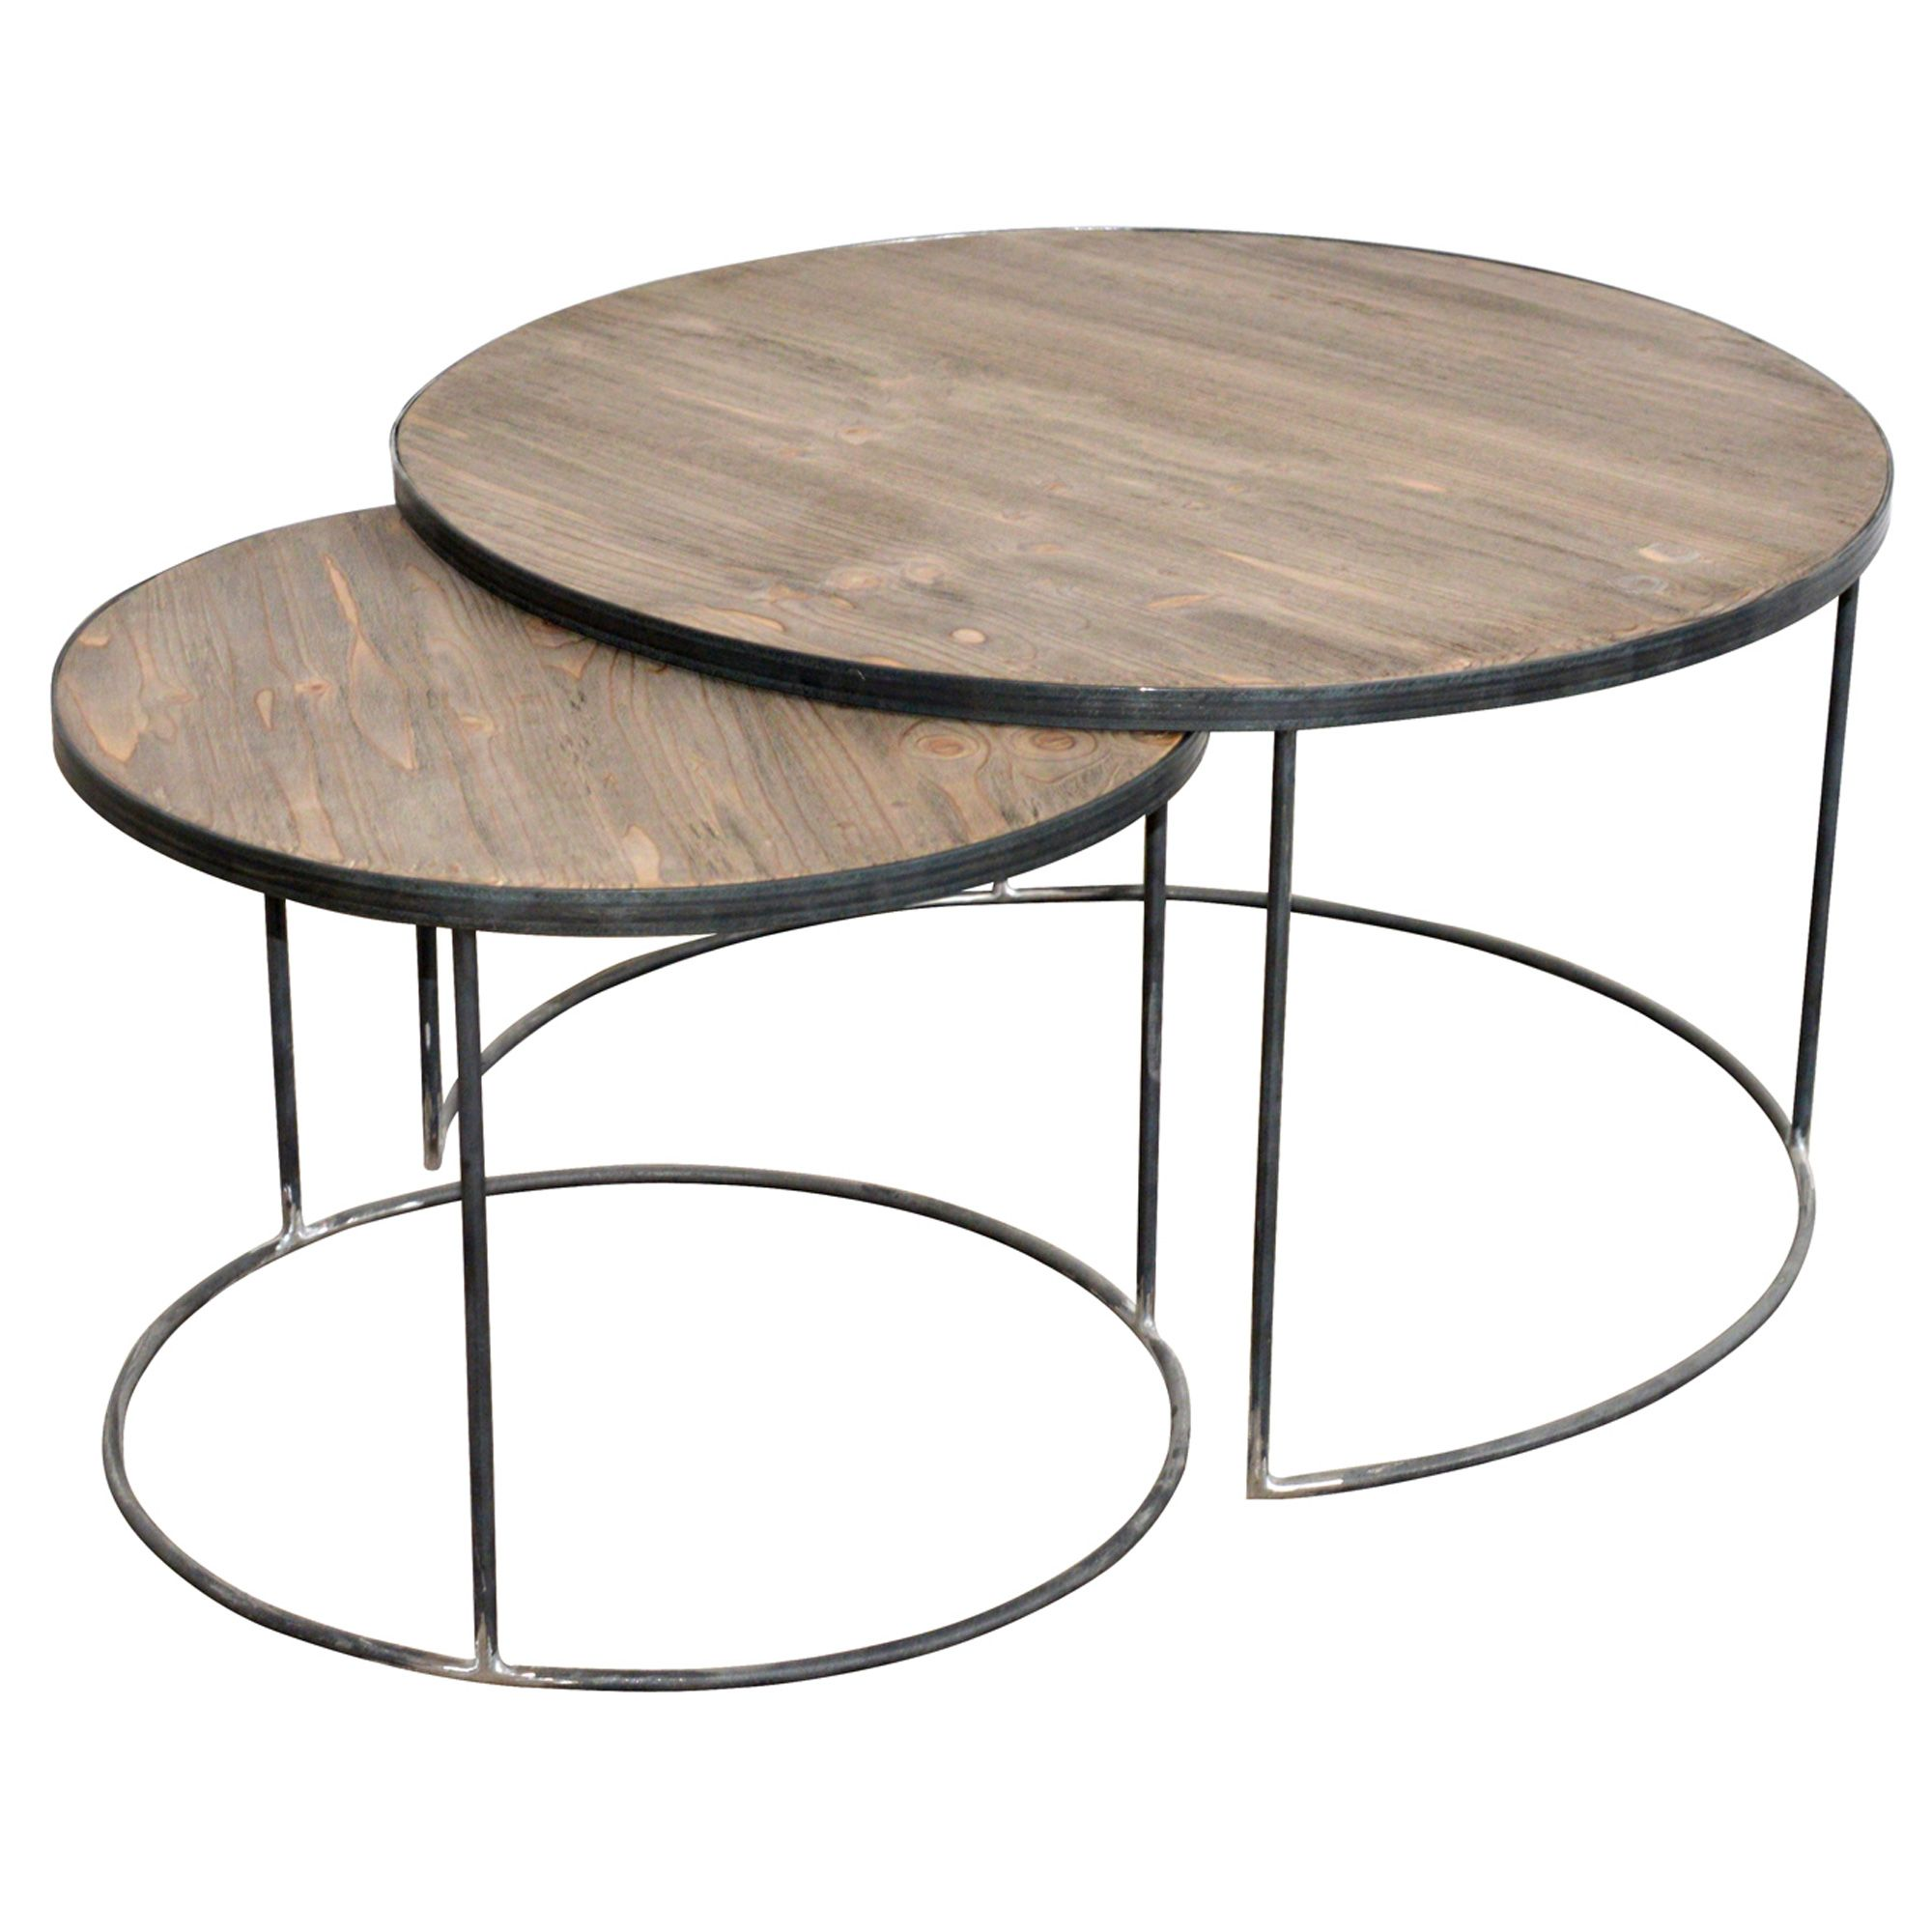 French Set Of Two Round Coffee Tables Coffee Table Round Wood